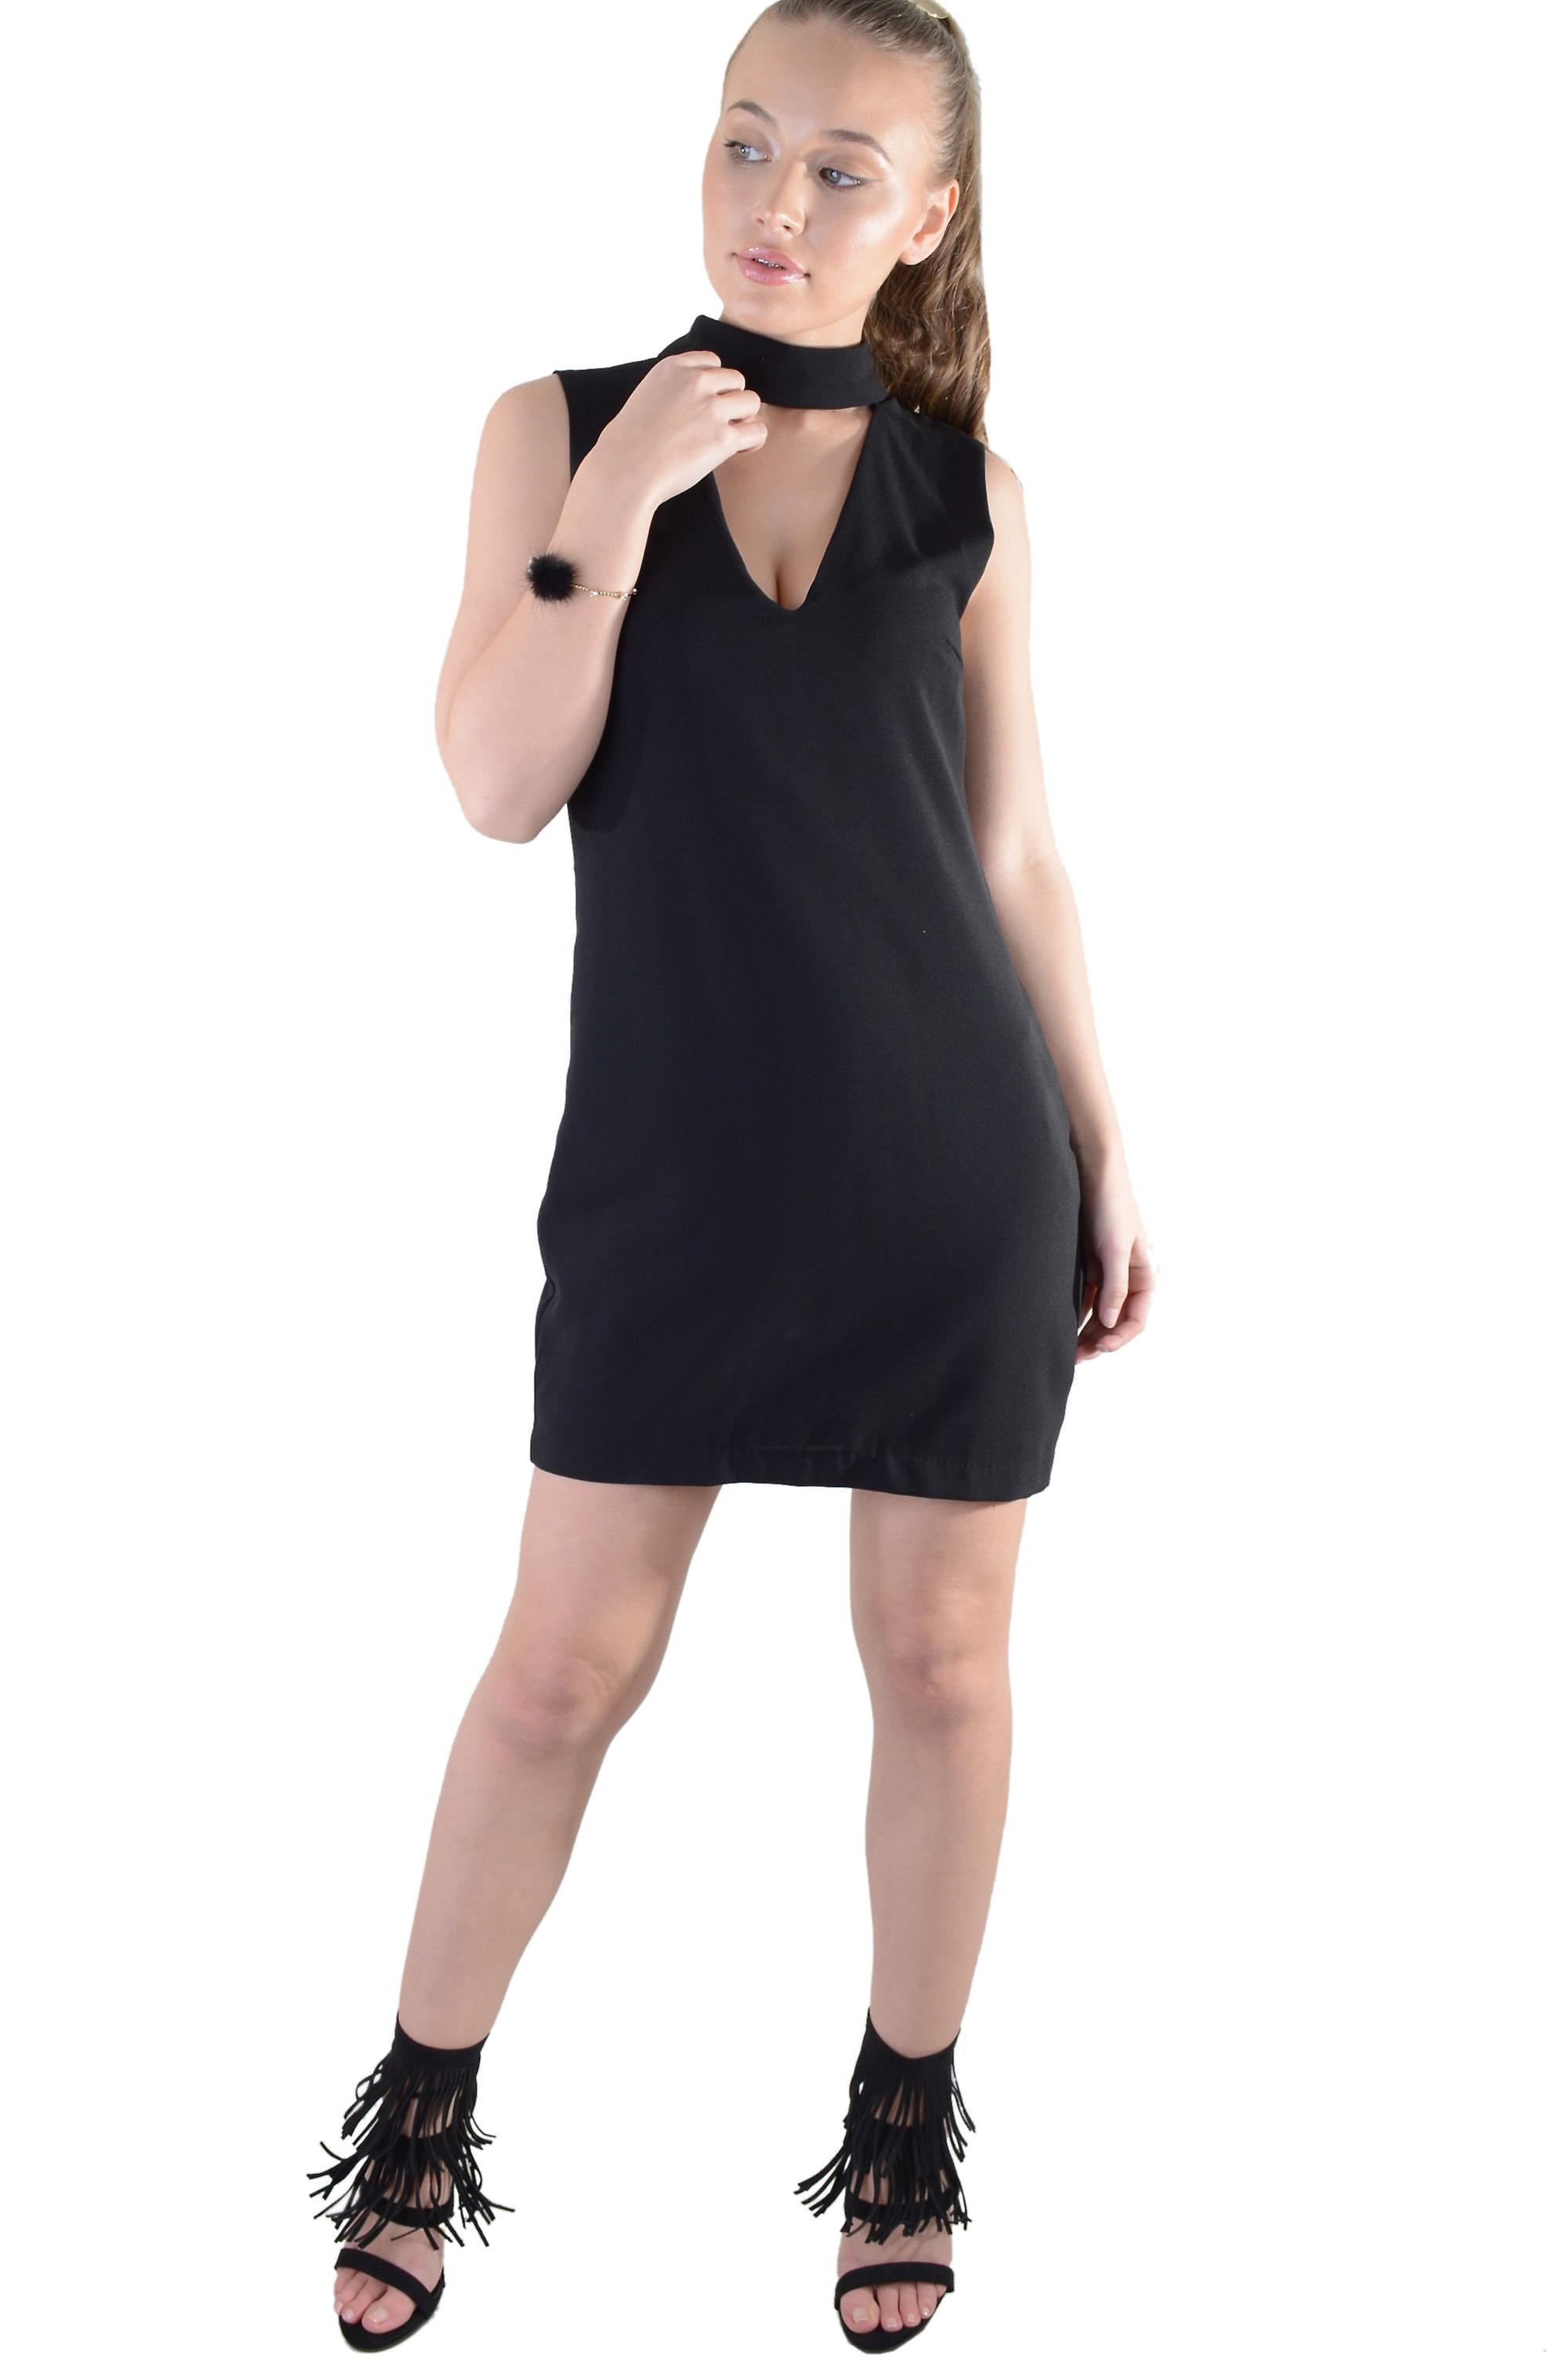 Lovemystyle Black Plunge Dress With Choker Detail - SAMPLE